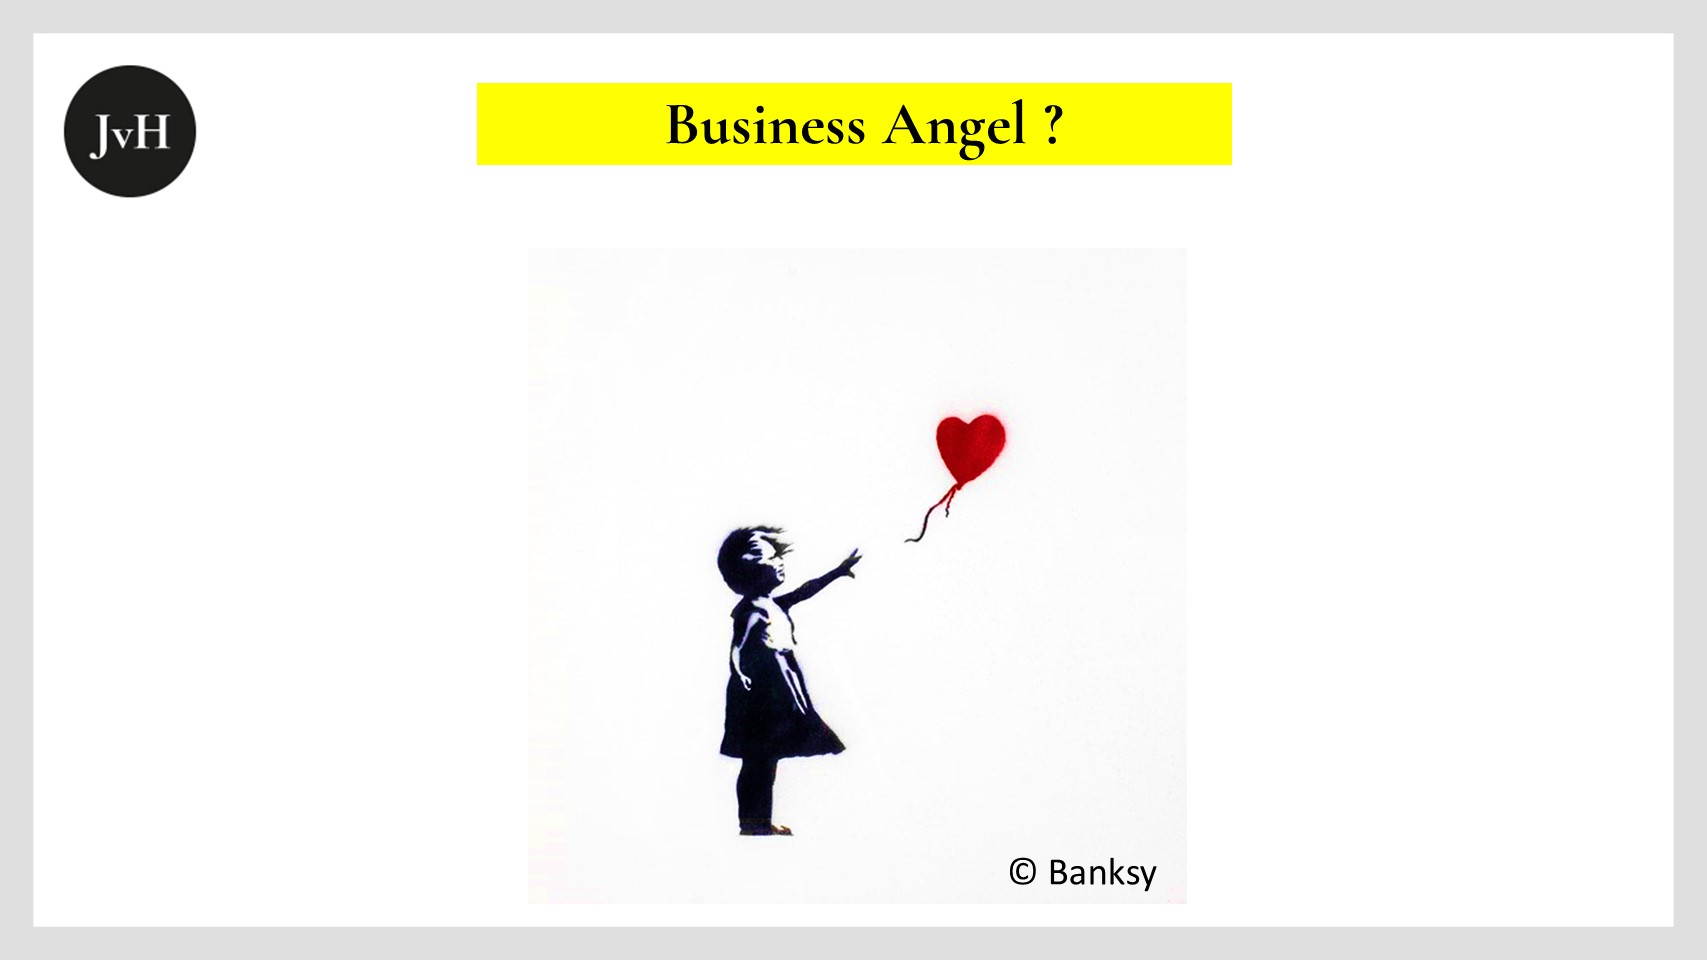 Banksy-Pic-with-girl-letting-fly-a-red-balloon-in-the-shape-of a-heart